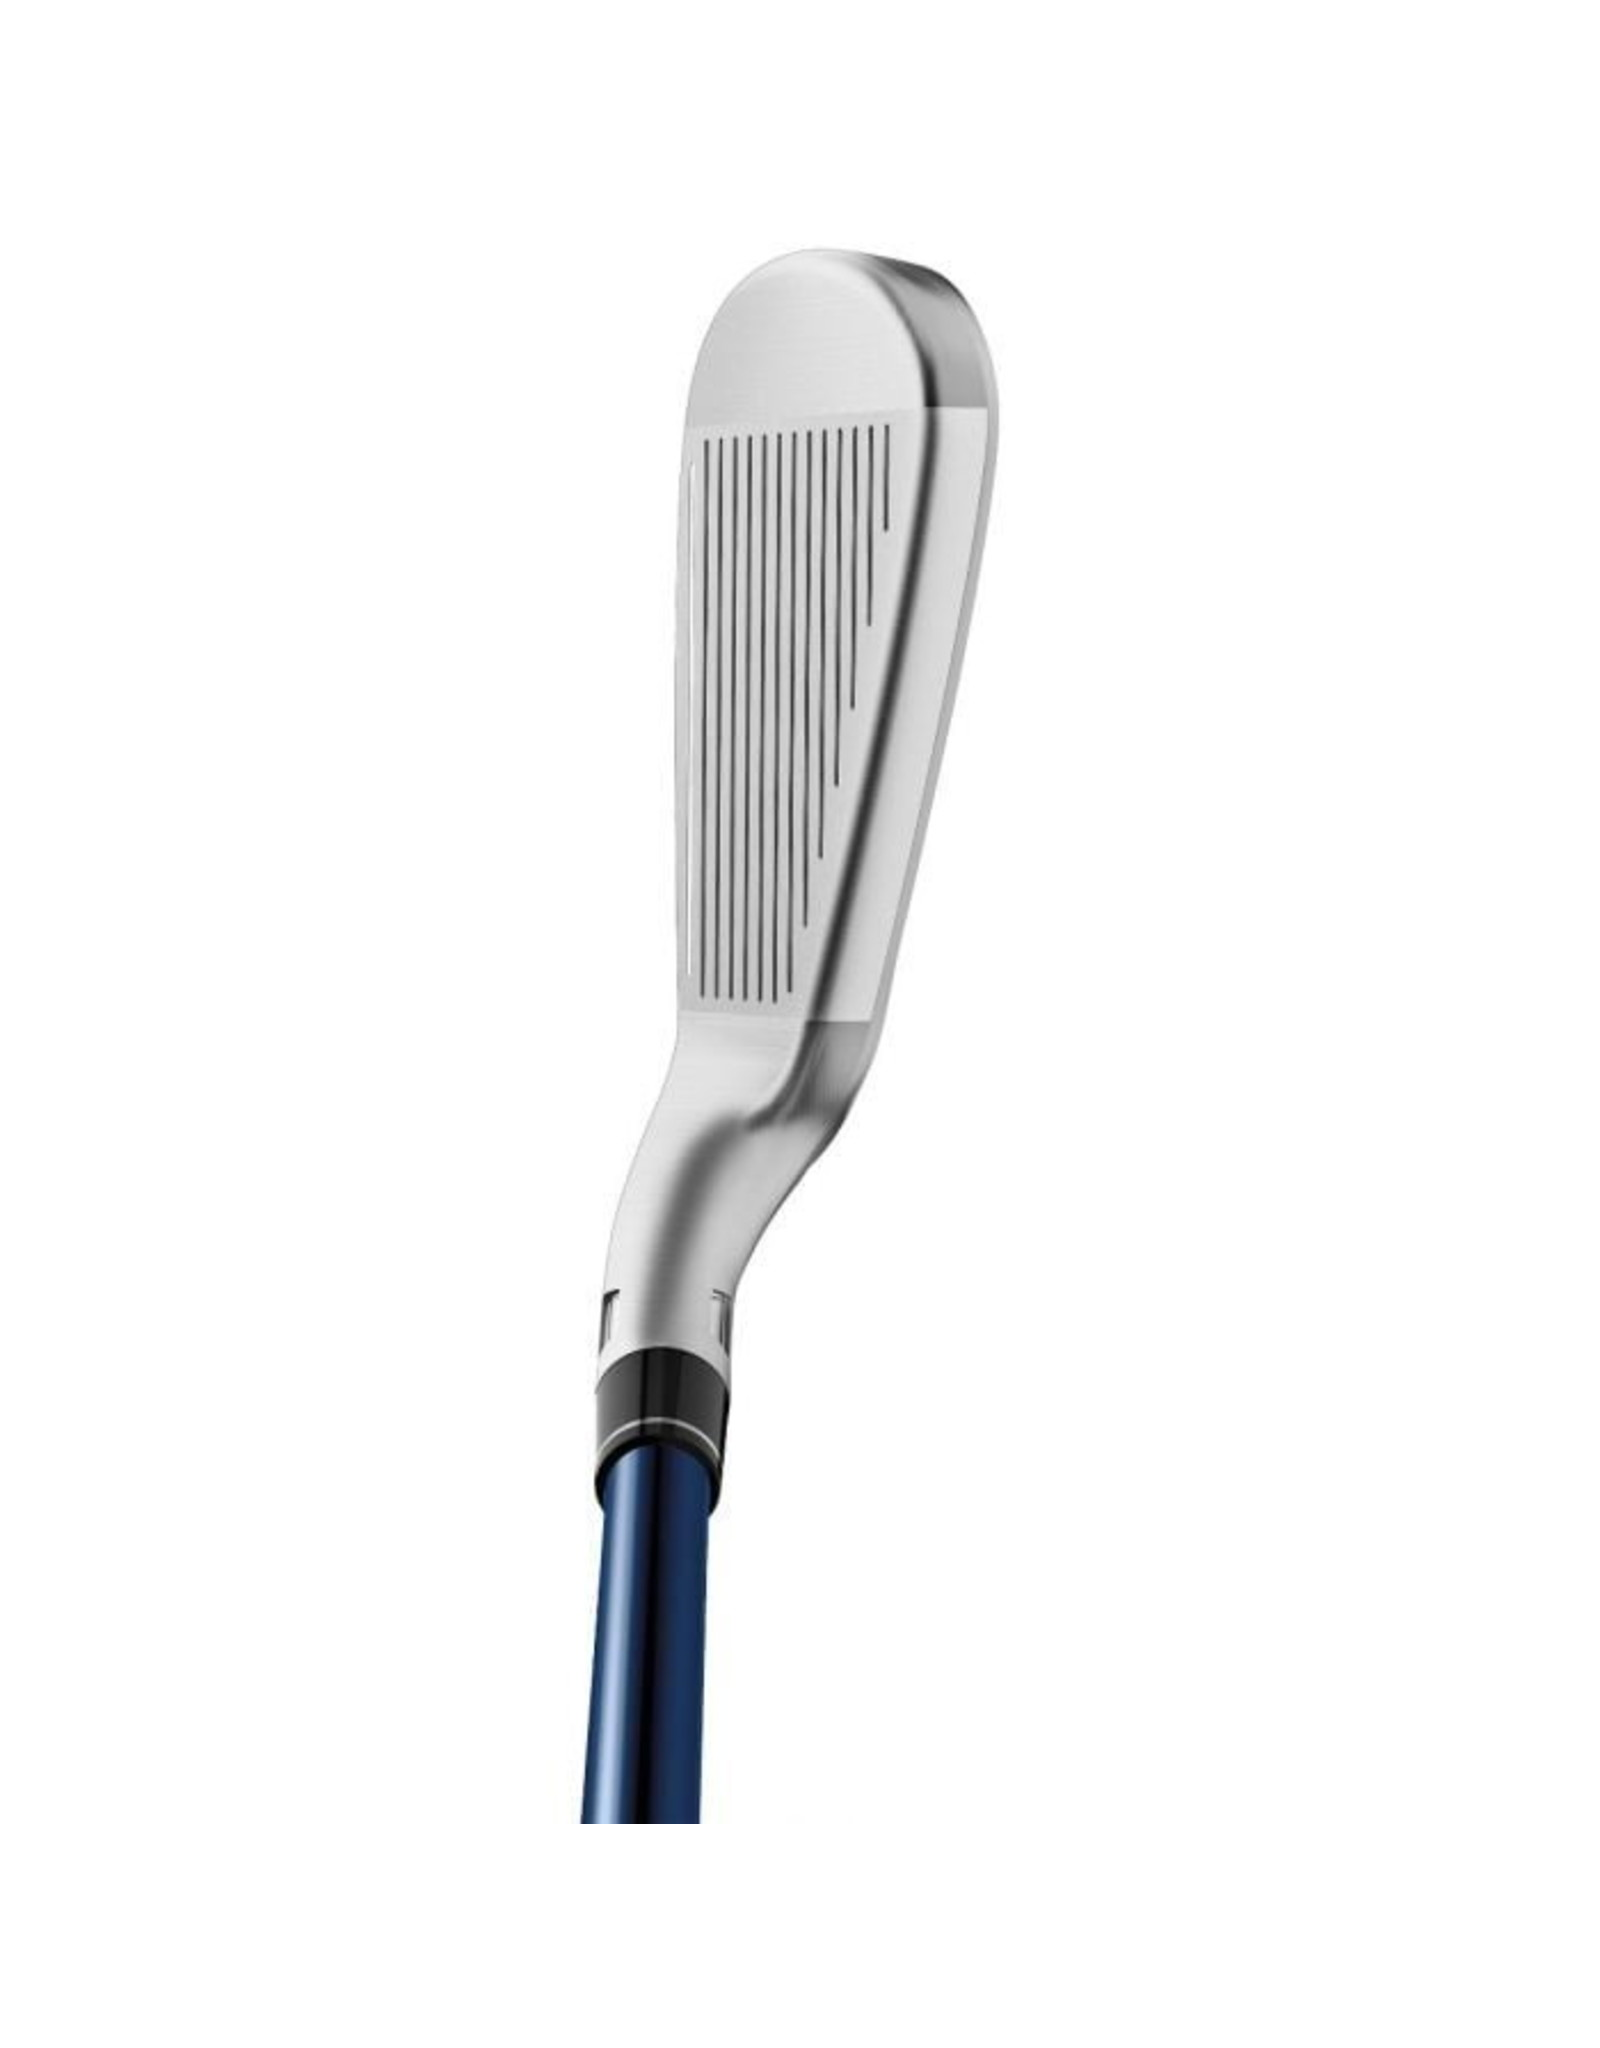 TAYLORMADE TAYLORMADE SIM2 MAX OS IRON GRAPHITE